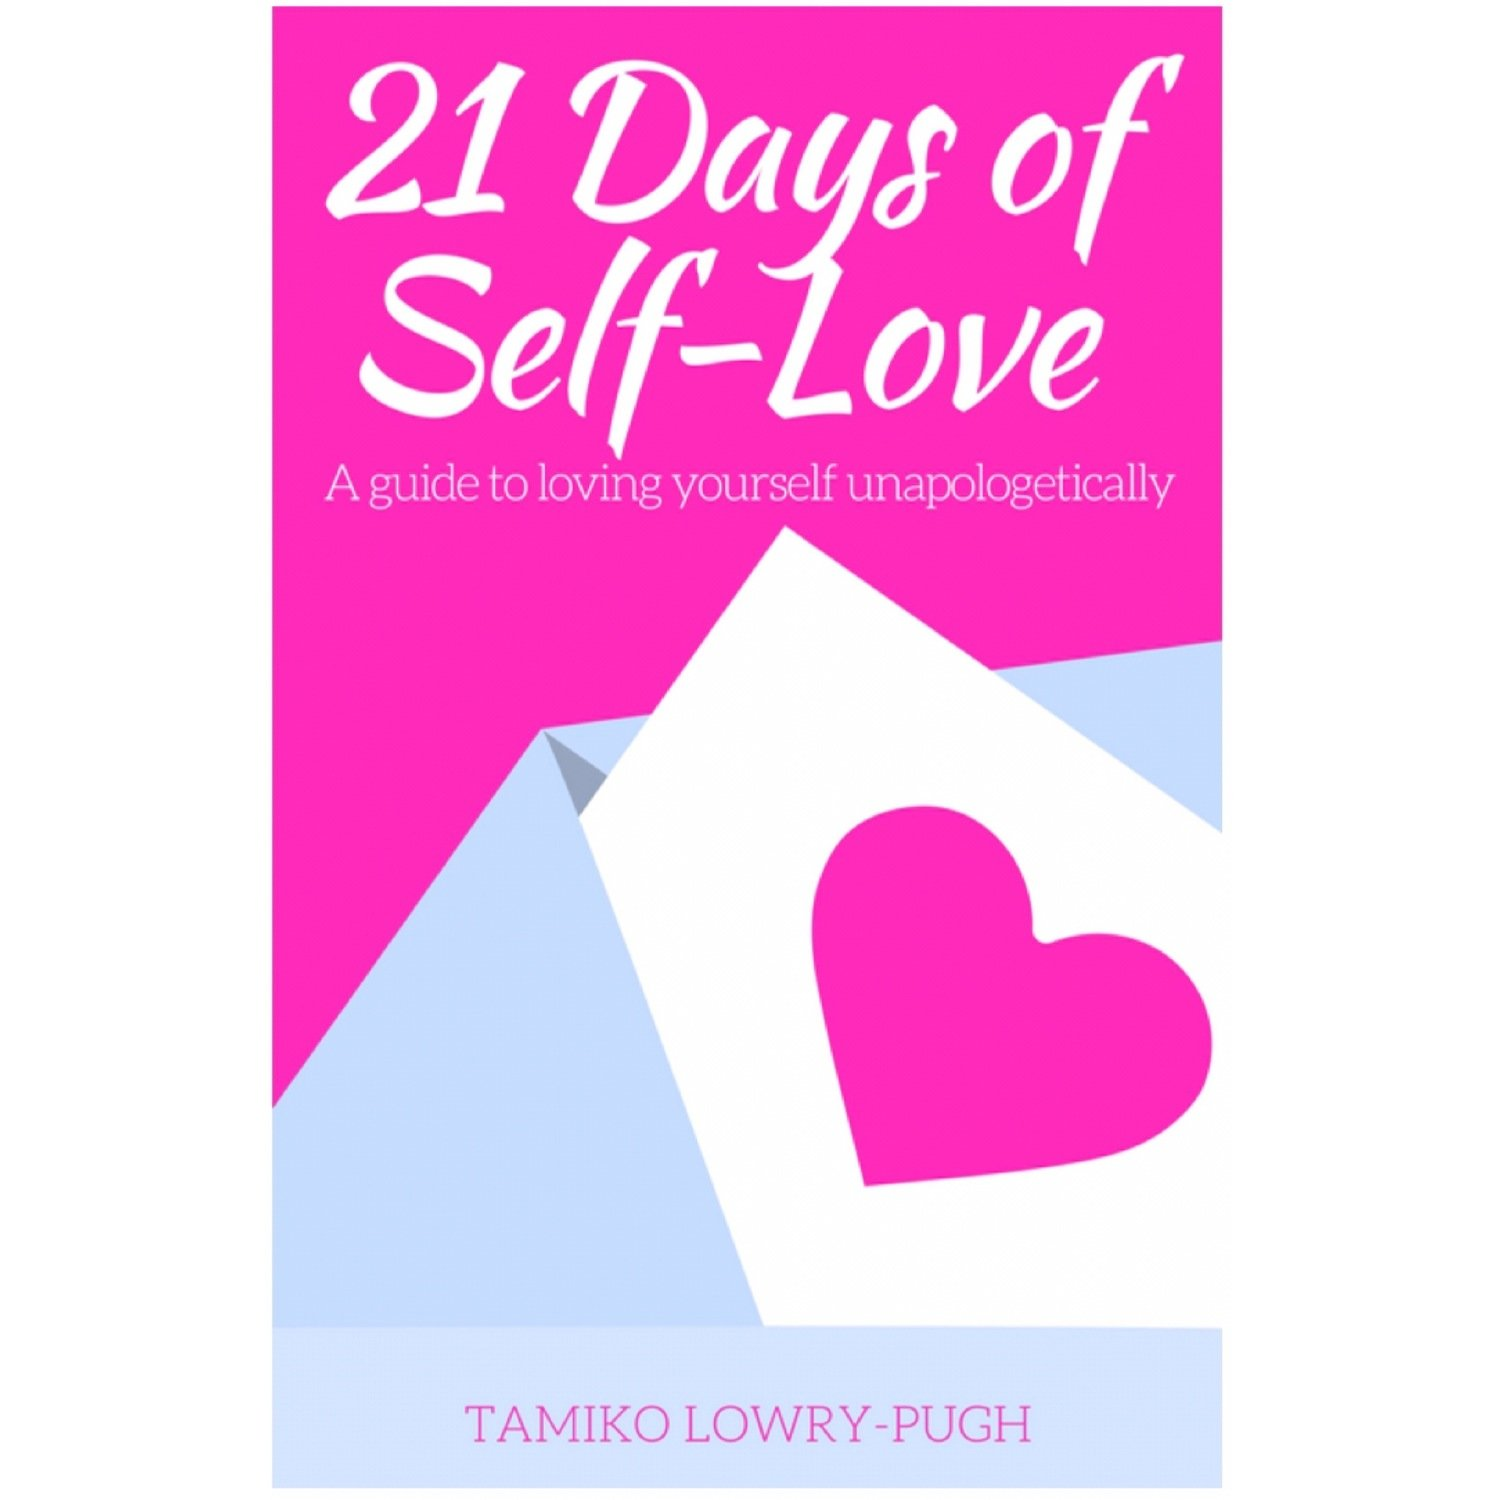 21 Days of Self-Love: A Guide to Loving Yourself Unapologetically (PAPERBACK)